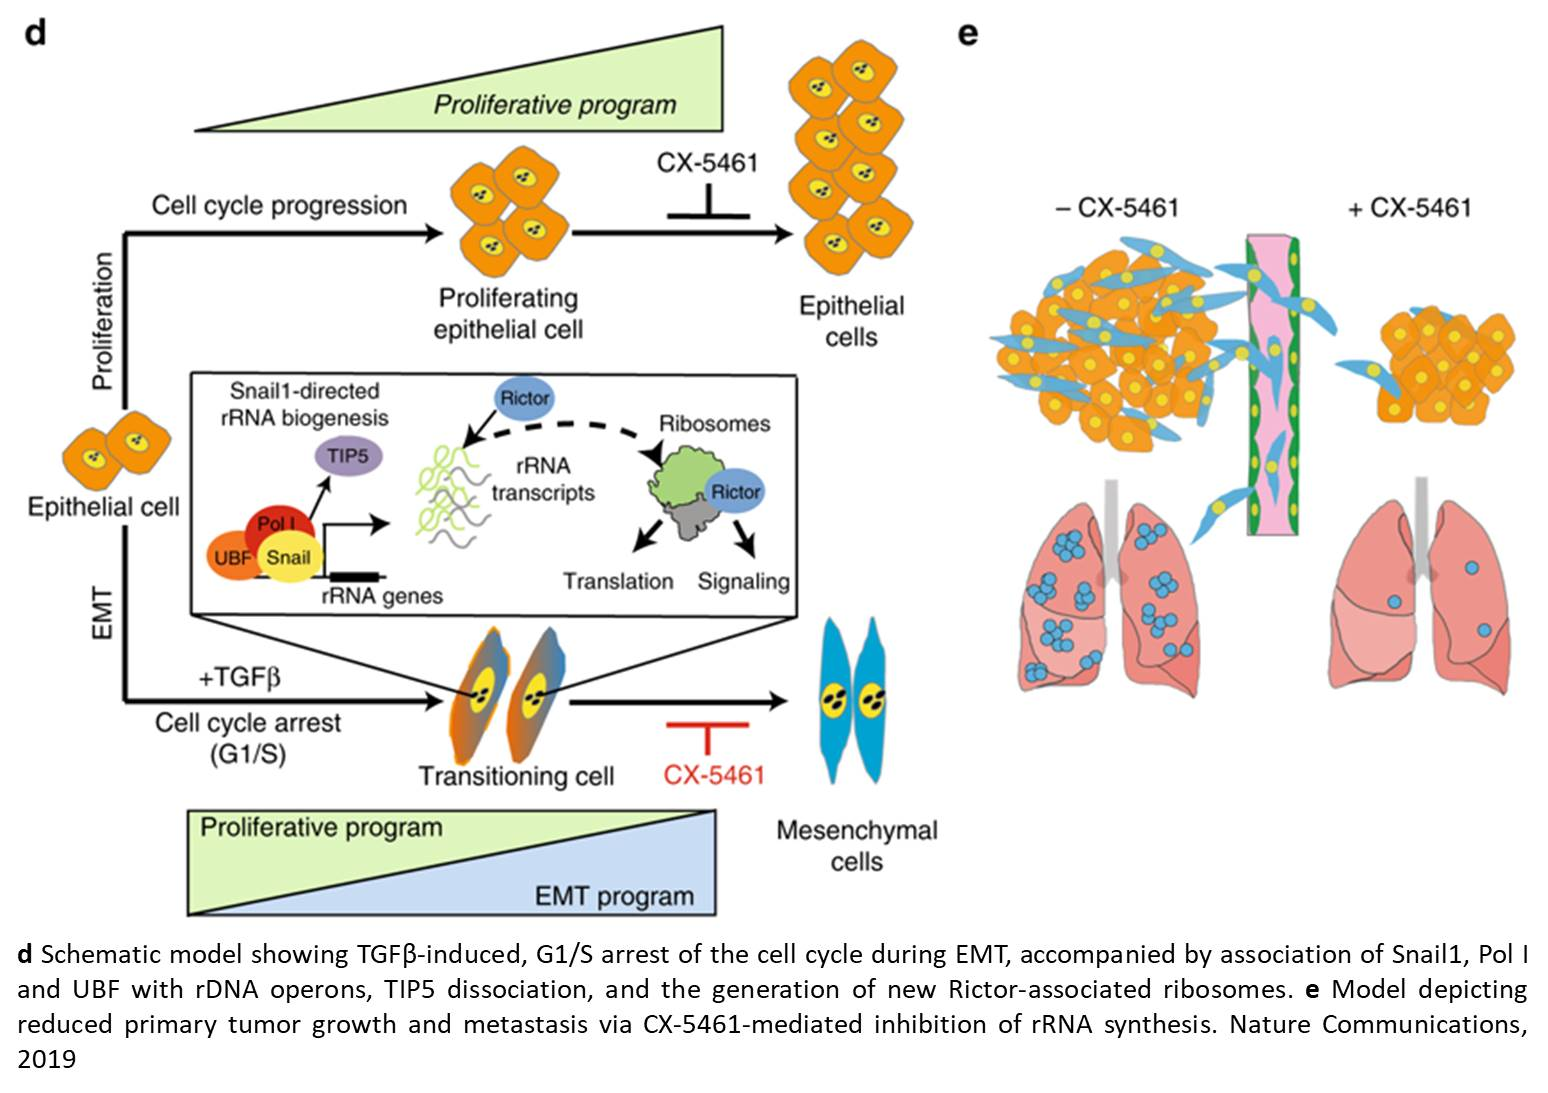 Epithelial to mesenchymal transition (EMT) require ribosomal synthesis in cancer